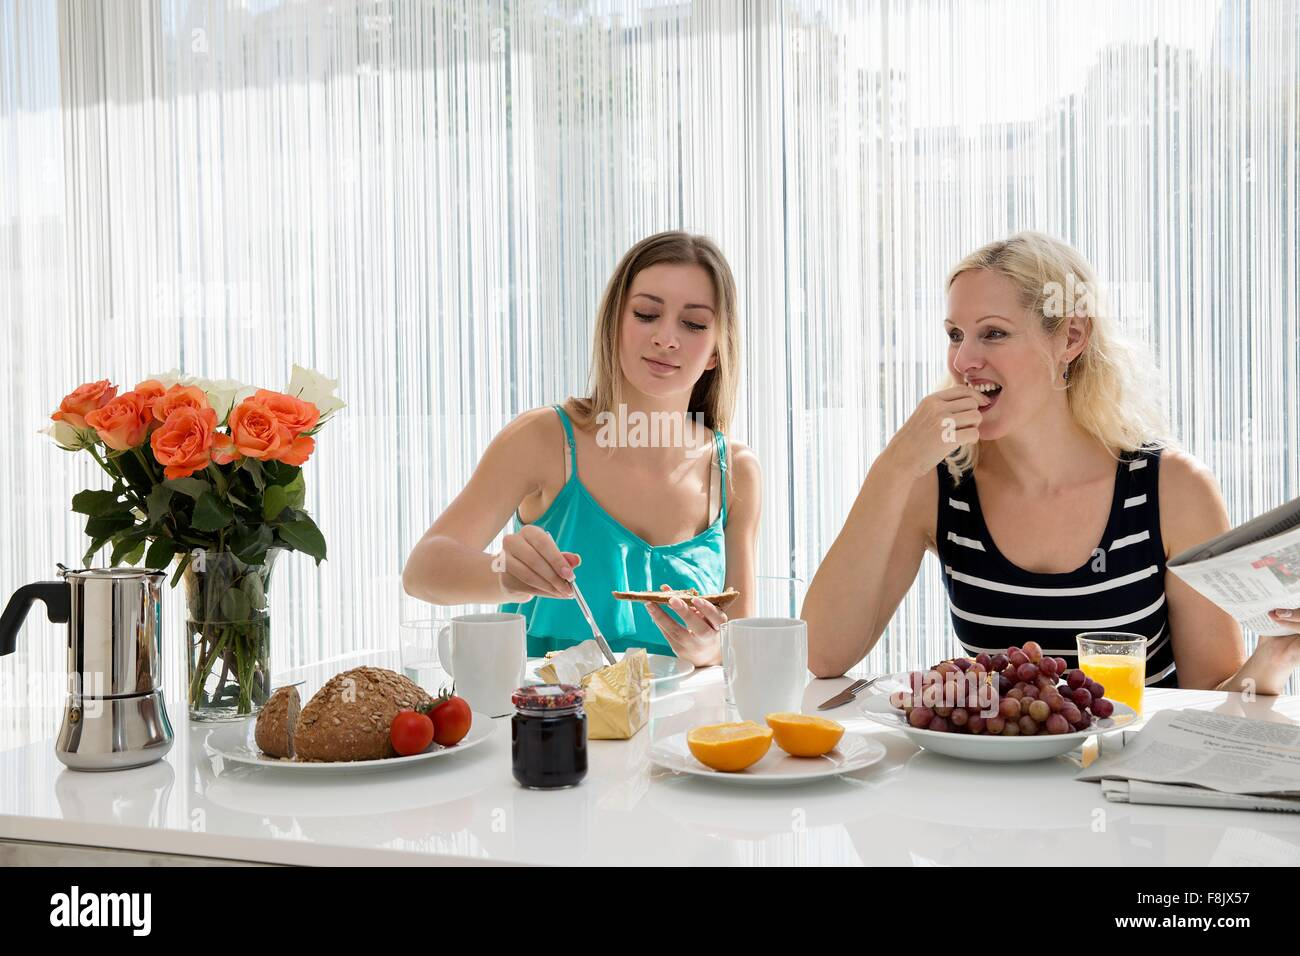 Women sitting at dining table spreading butter on bread, eating a continental breakfast together - Stock Image